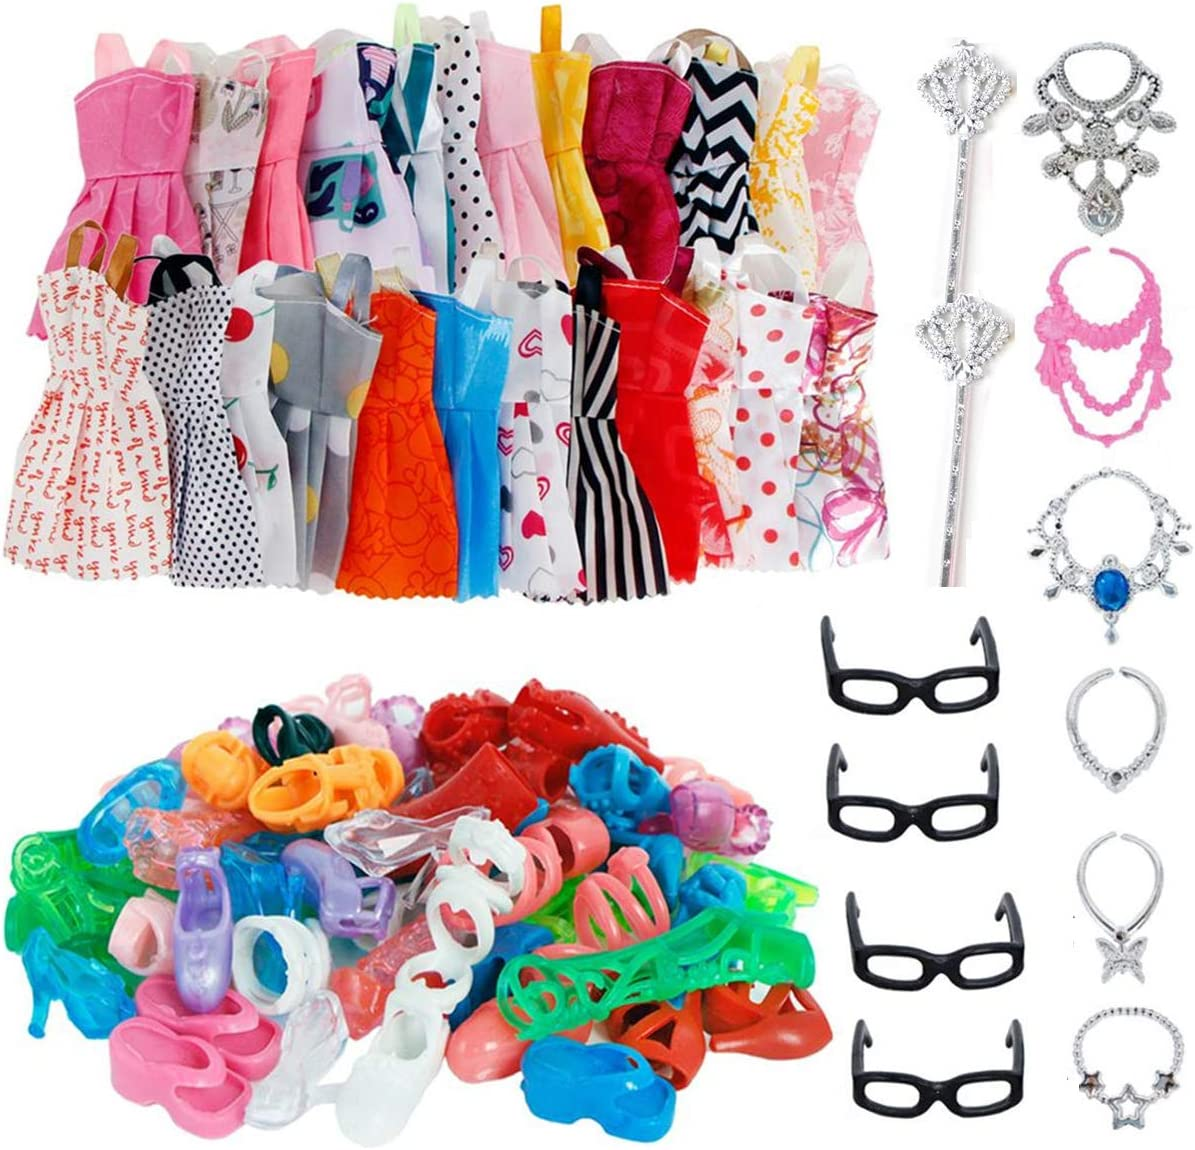 AMETUS 32 PCS Doll Accessories, 10x Mix Cute Dresses, 10x Shoes, 4X Glasses, 6X Necklaces, 2X Fairy Sticks Dress Clothes for Barbie Doll